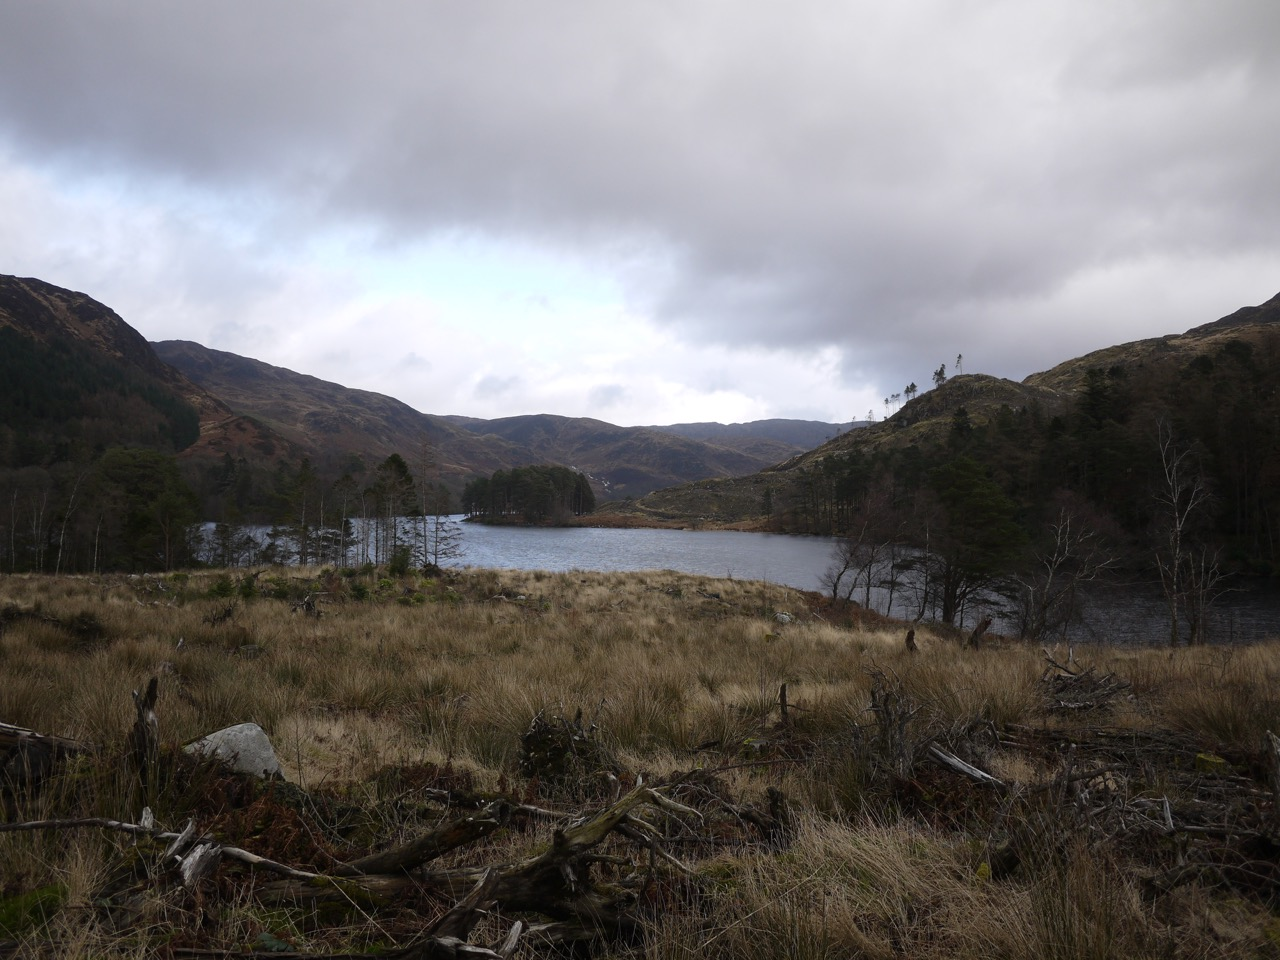 Western end of Loch Trool